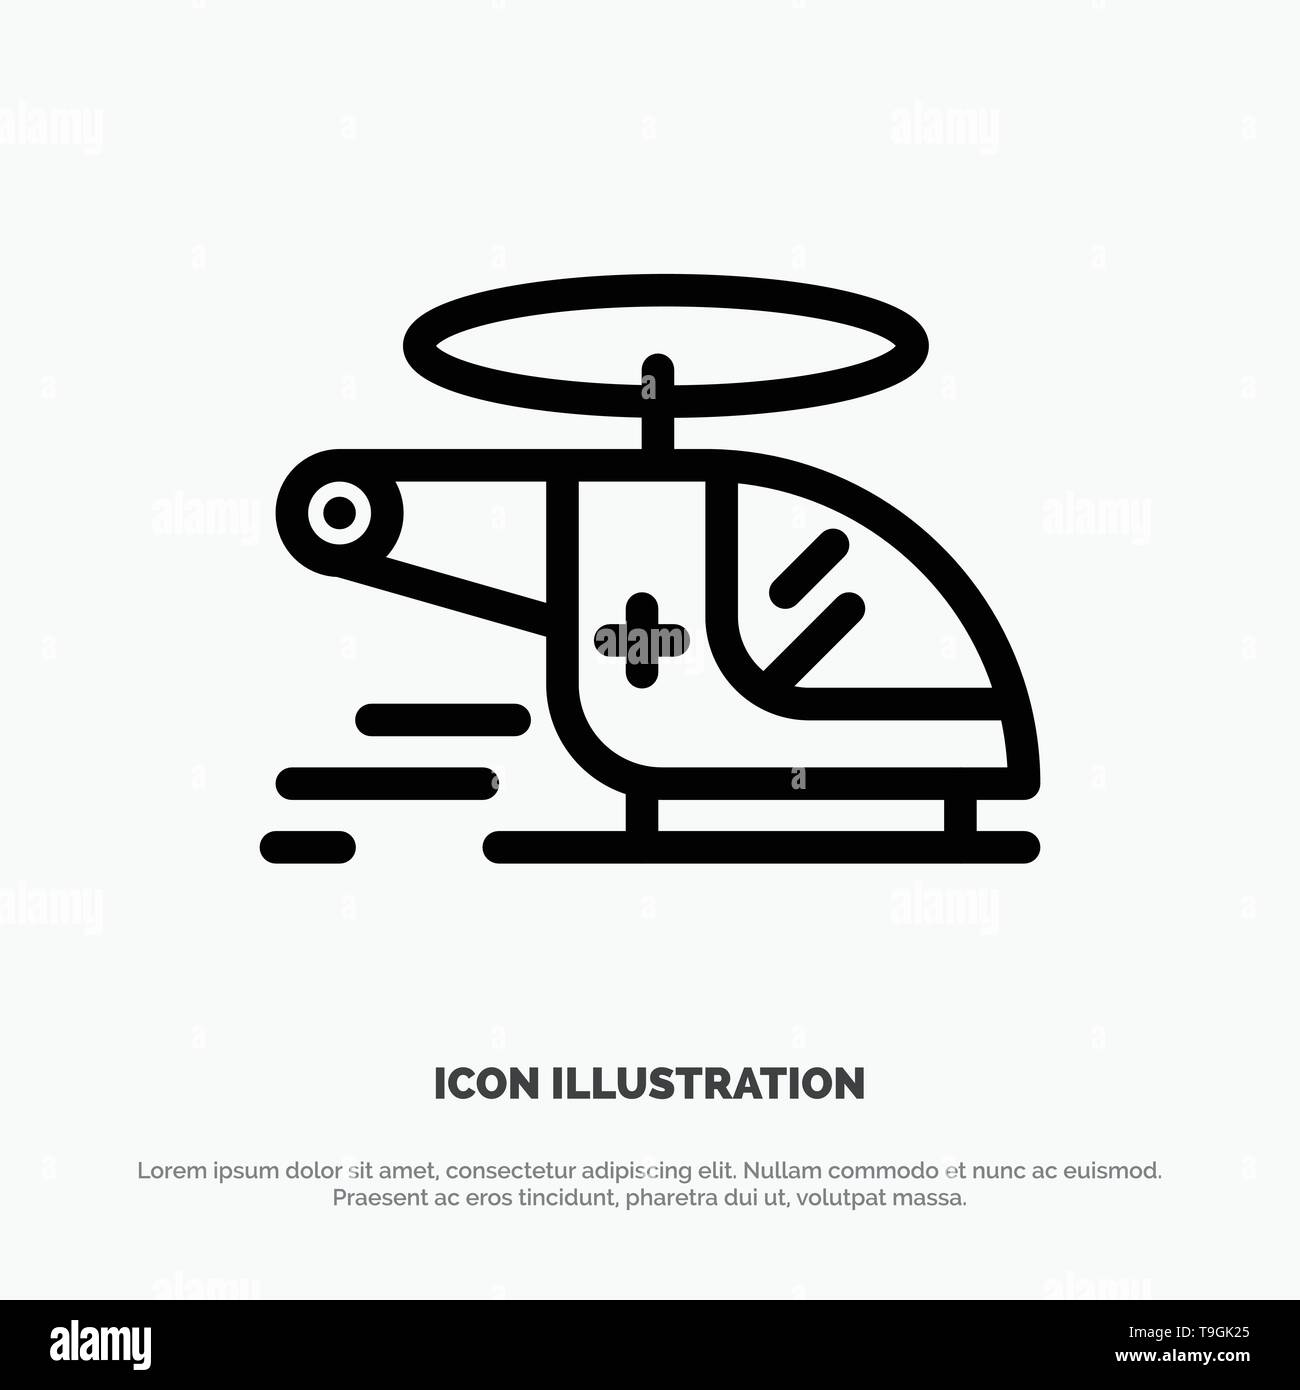 Helicopter, Chopper, Medical, Ambulance, Air Line Icon Vector - Stock Image